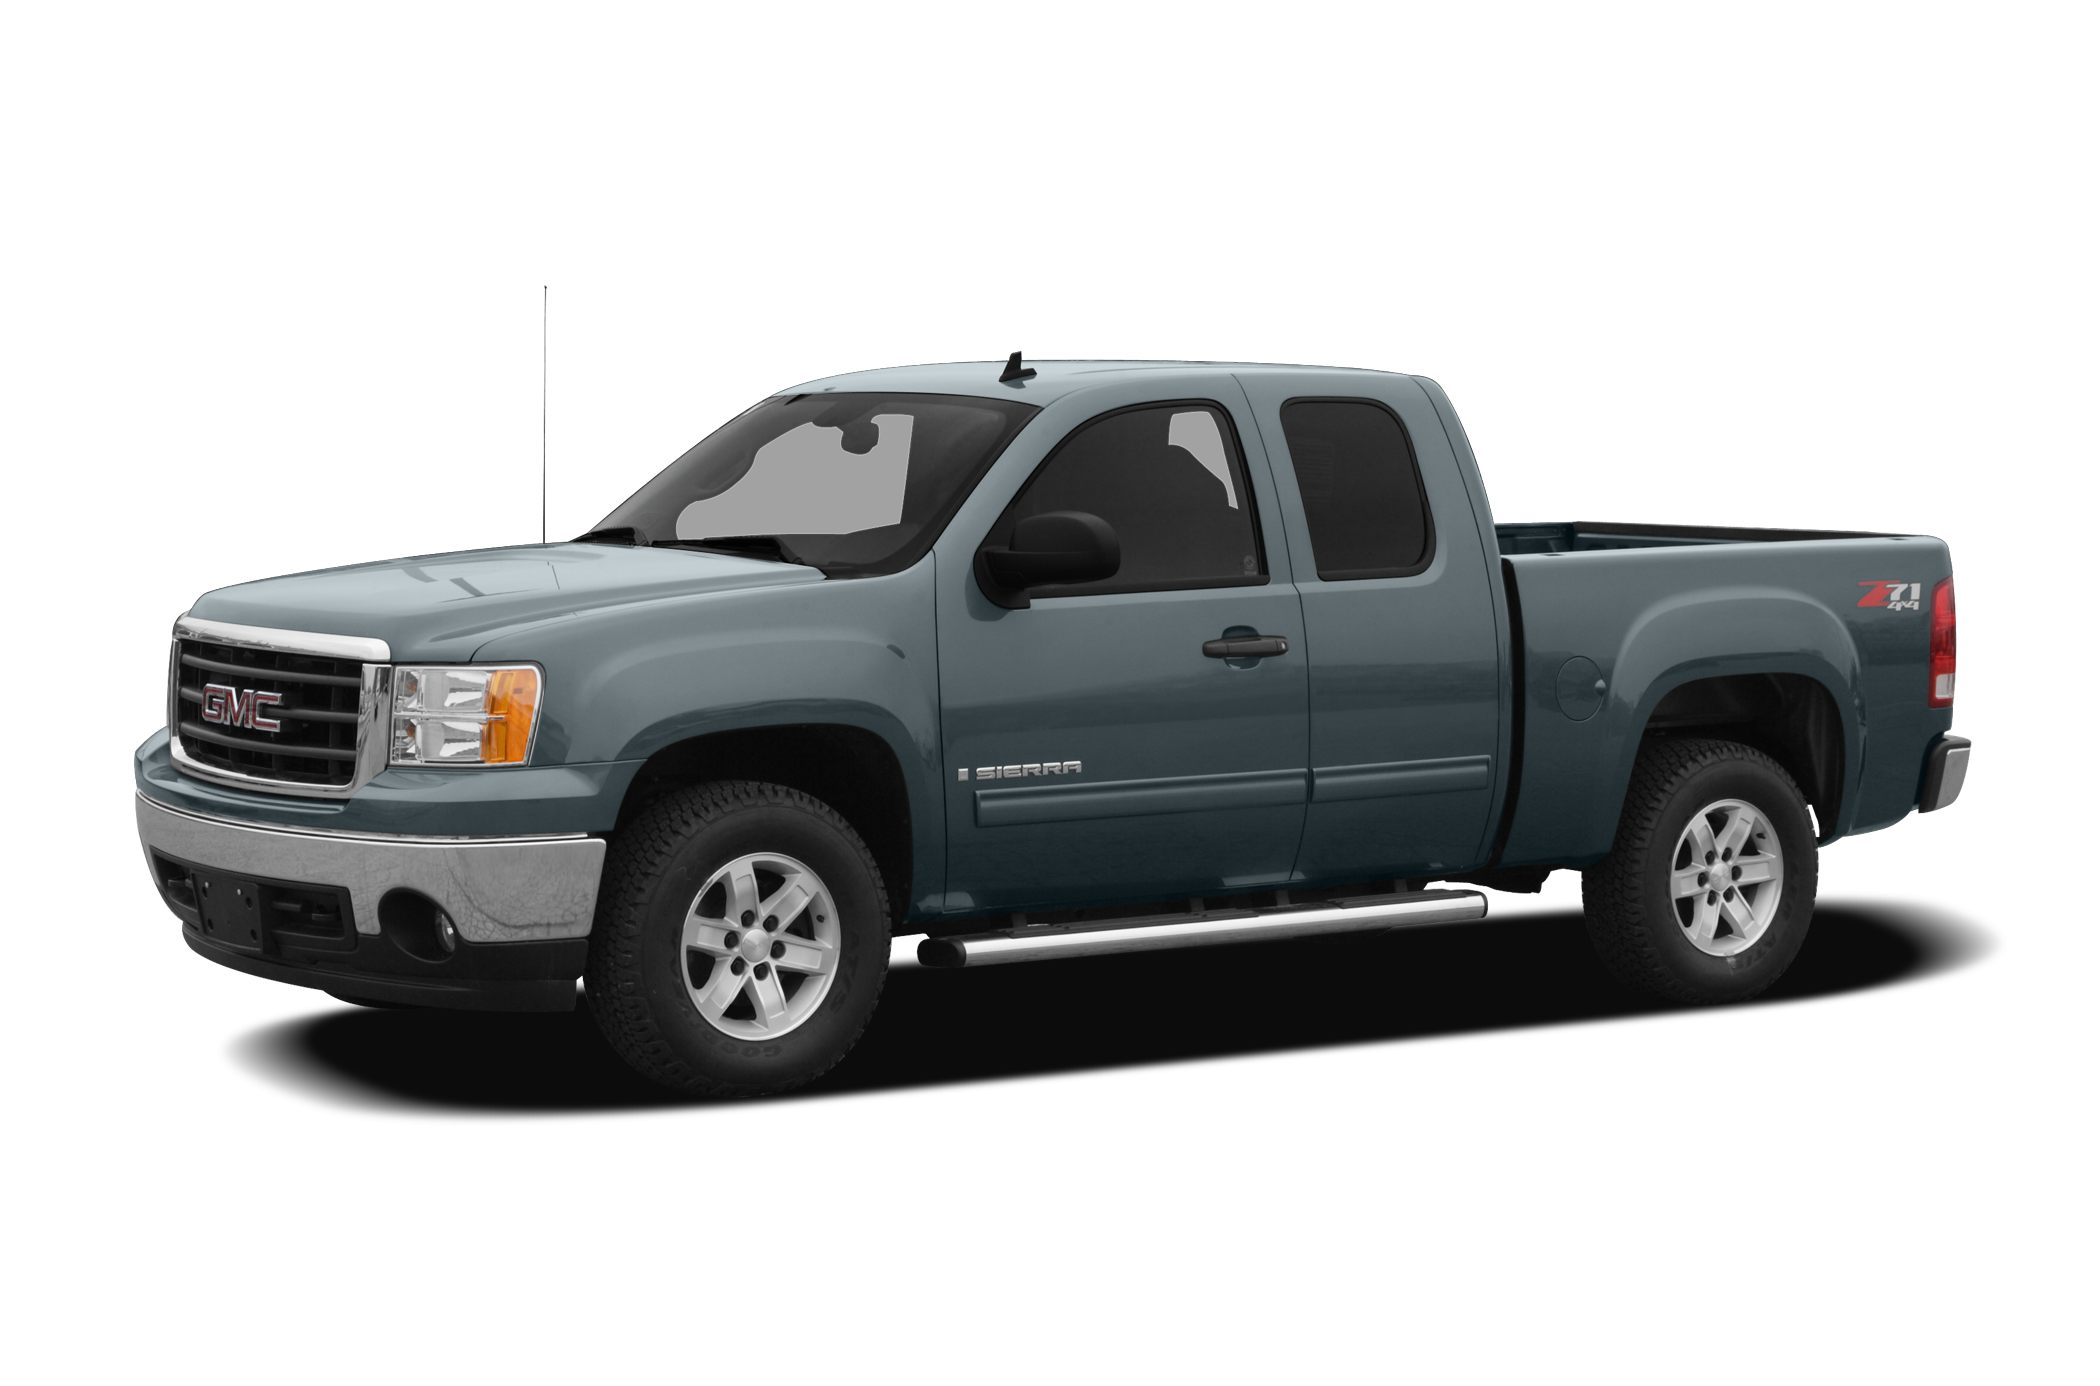 2008 GMC Sierra 1500  ITS OUR 50TH ANNIVERSARY HERE AT MARTYS AND TO CELEBRATE WERE OFFERING THE